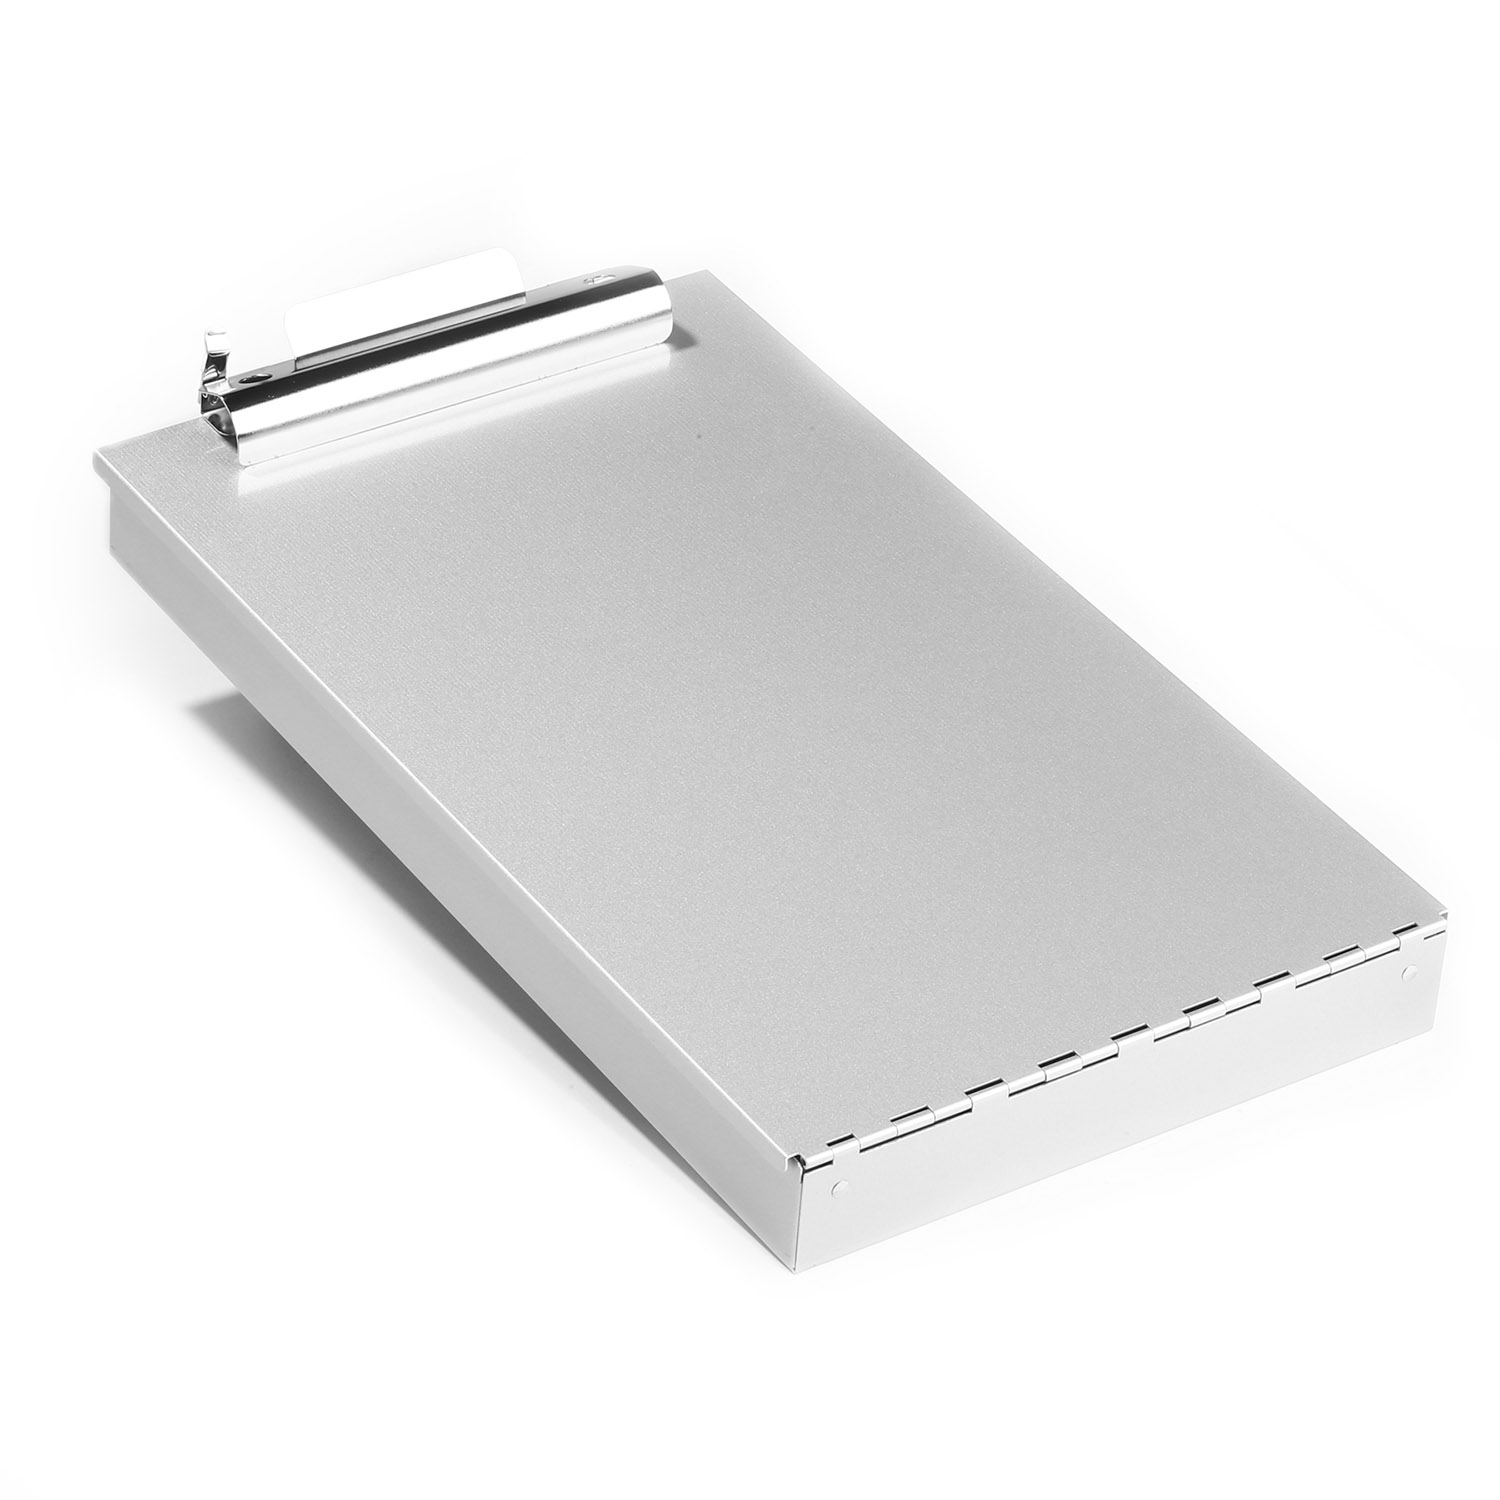 Galls StreetPro Top Open Legal Size Clipboard